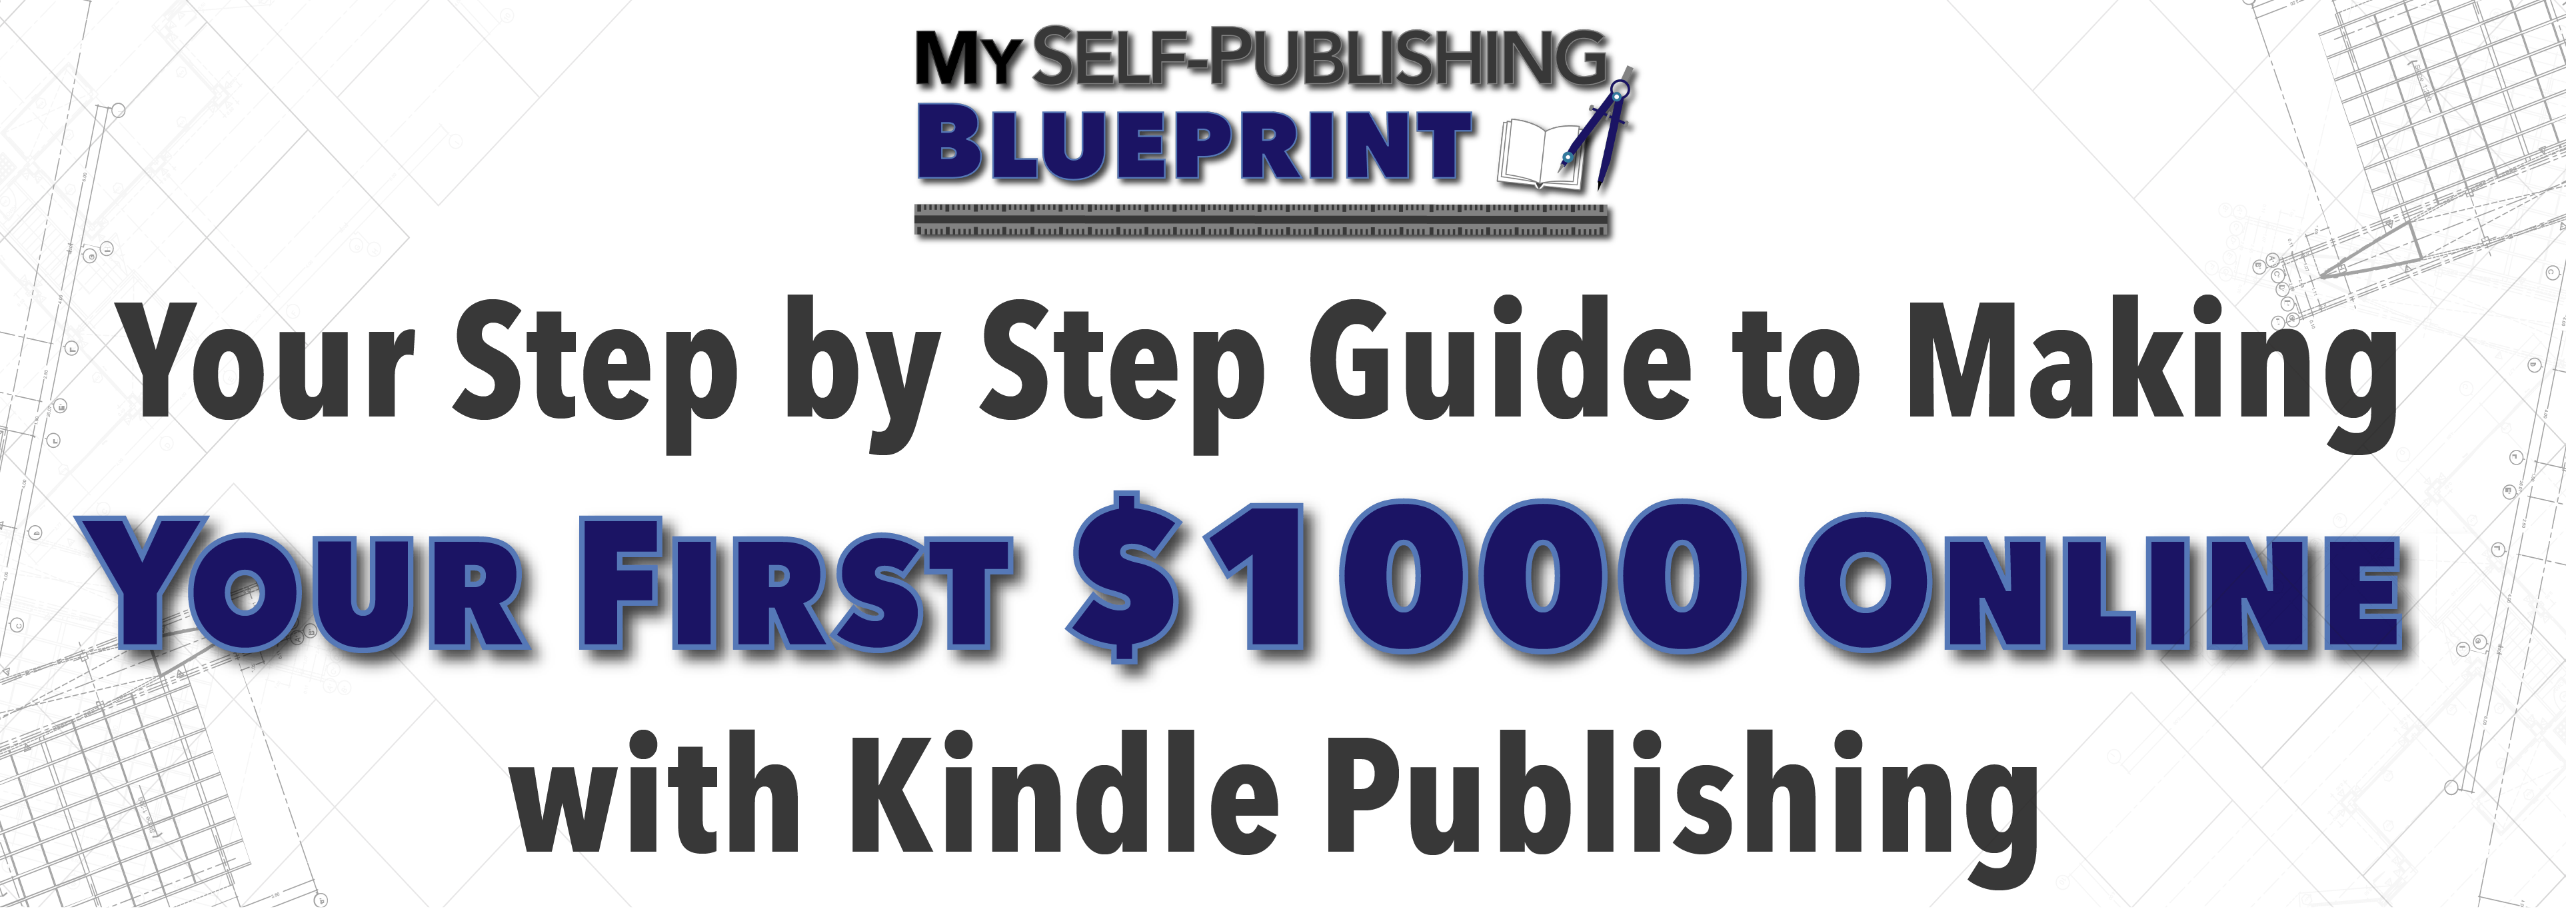 My self publishing blueprint malvernweather Images